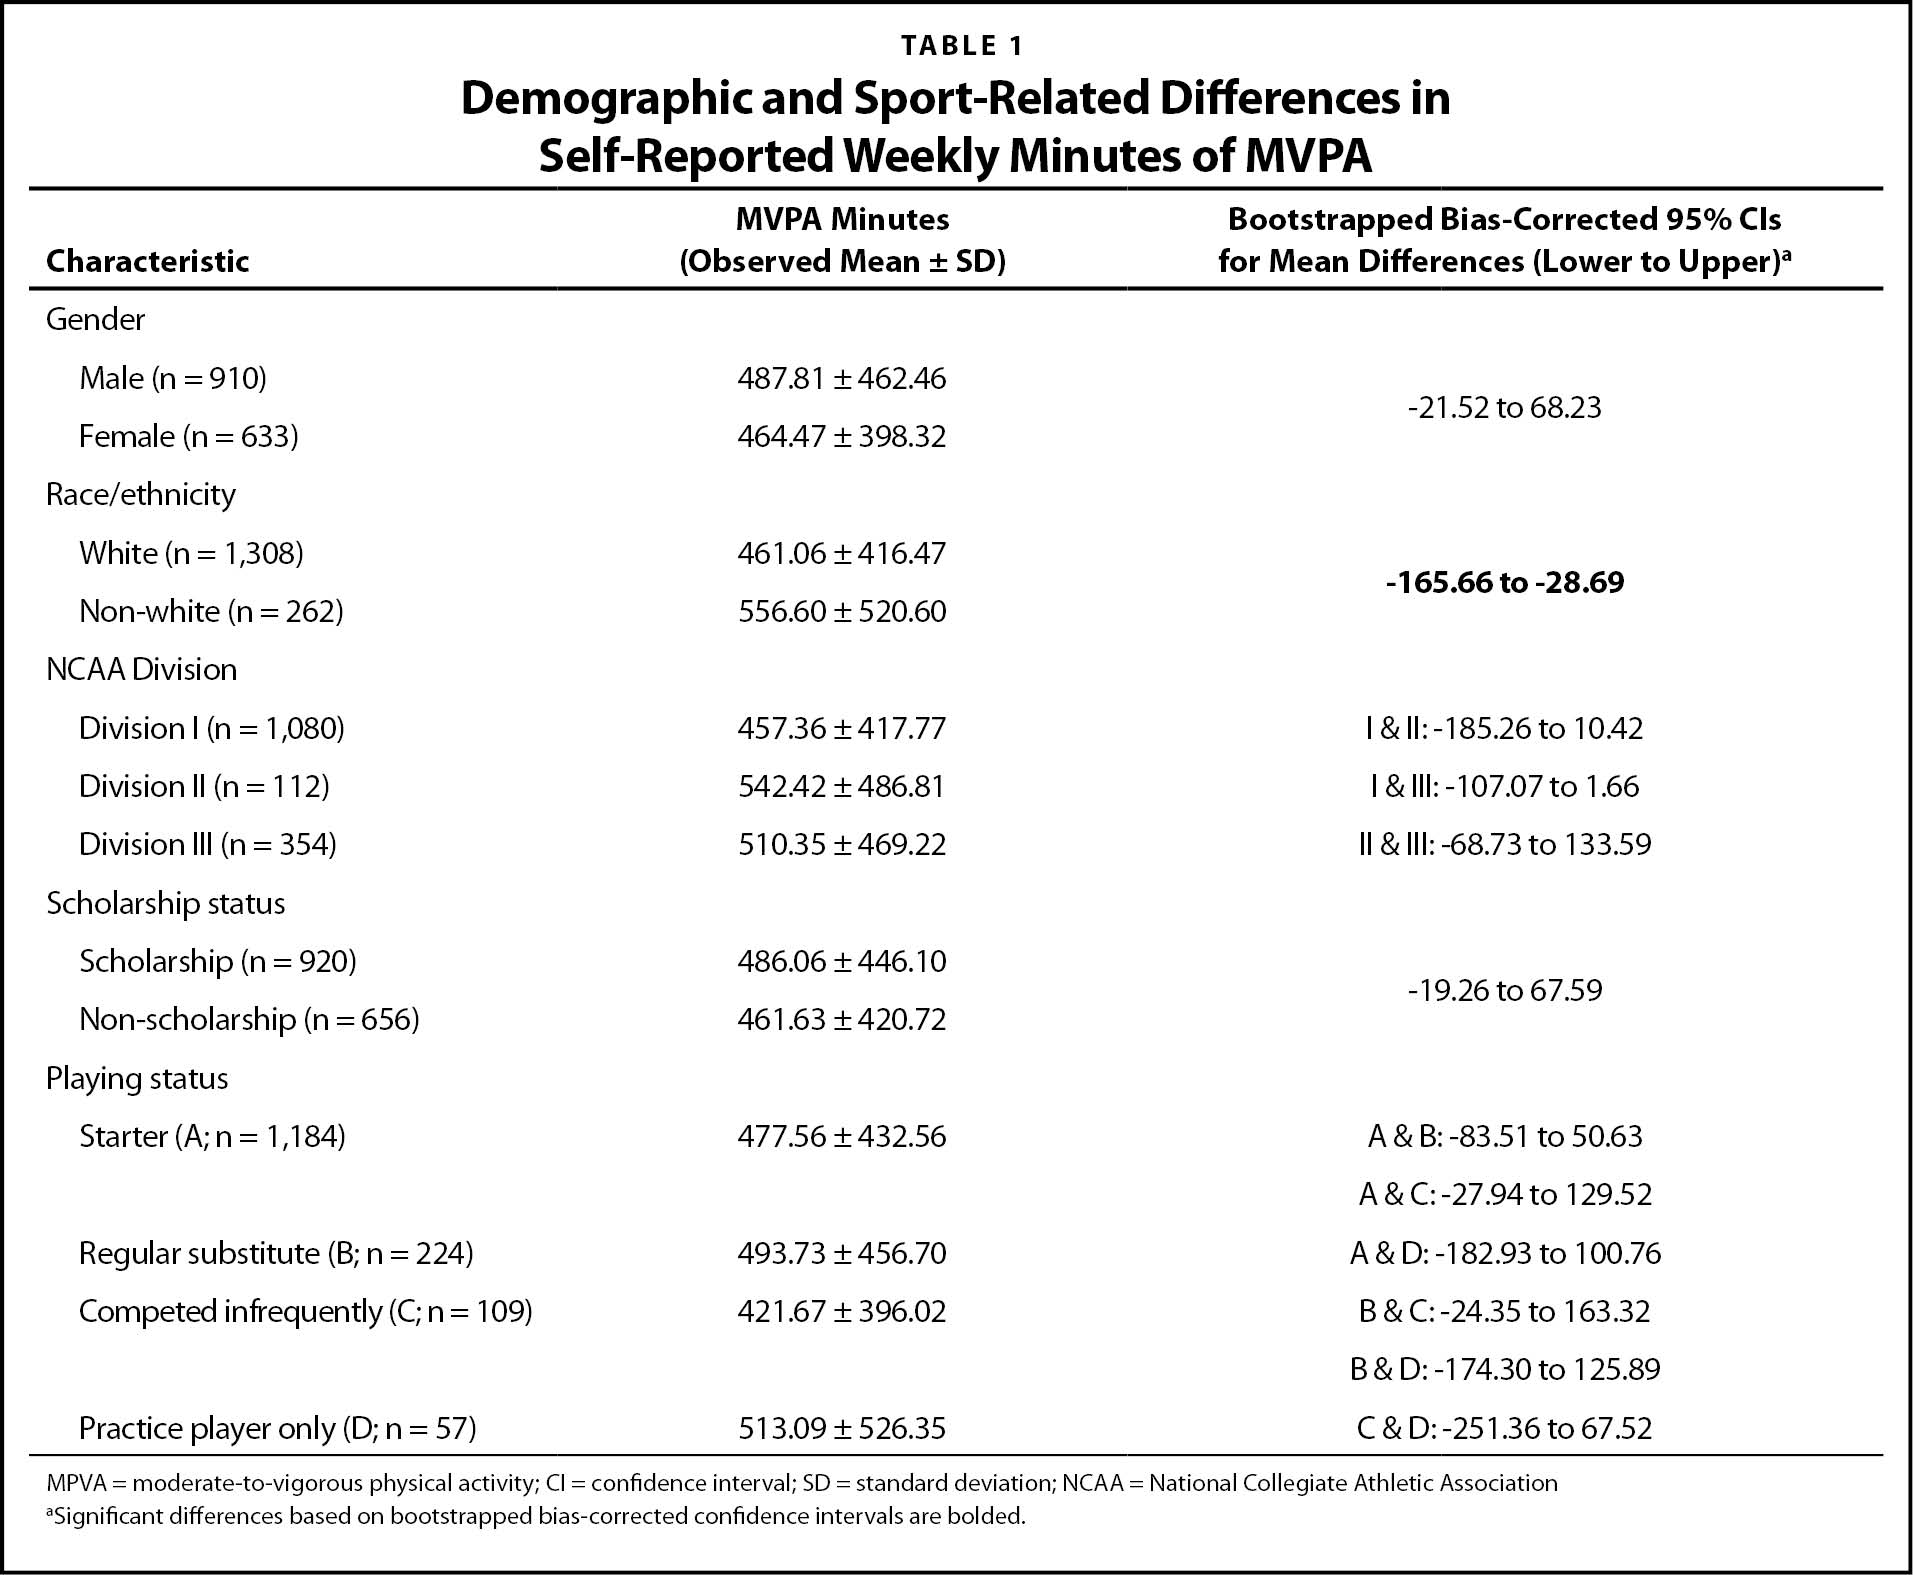 Demographic and Sport-Related Differences in Self-Reported Weekly Minutes of MVPA